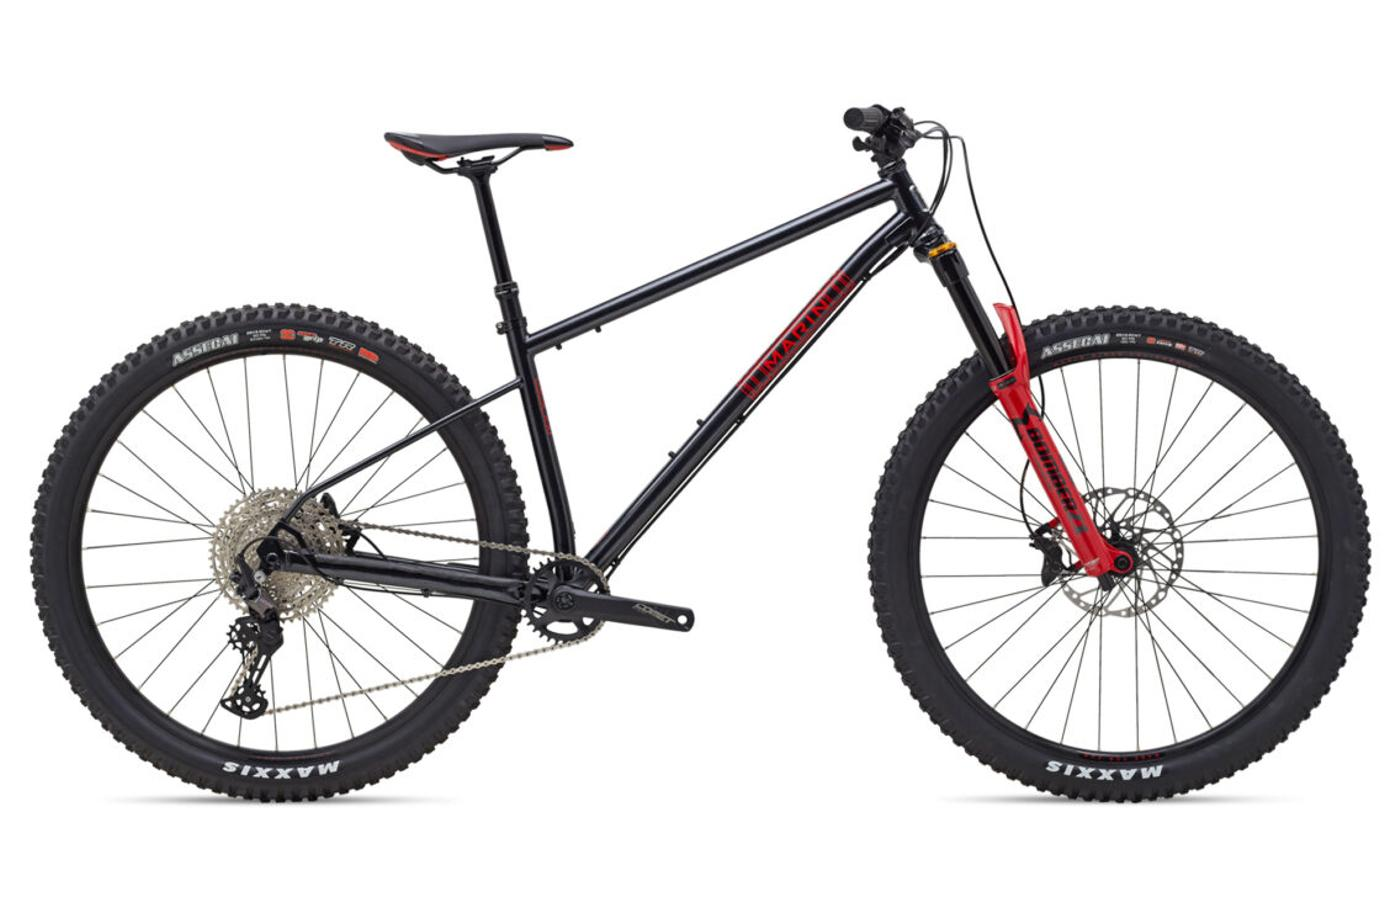 The Marin El Roy Hardtail is a Hardcore Hardtail